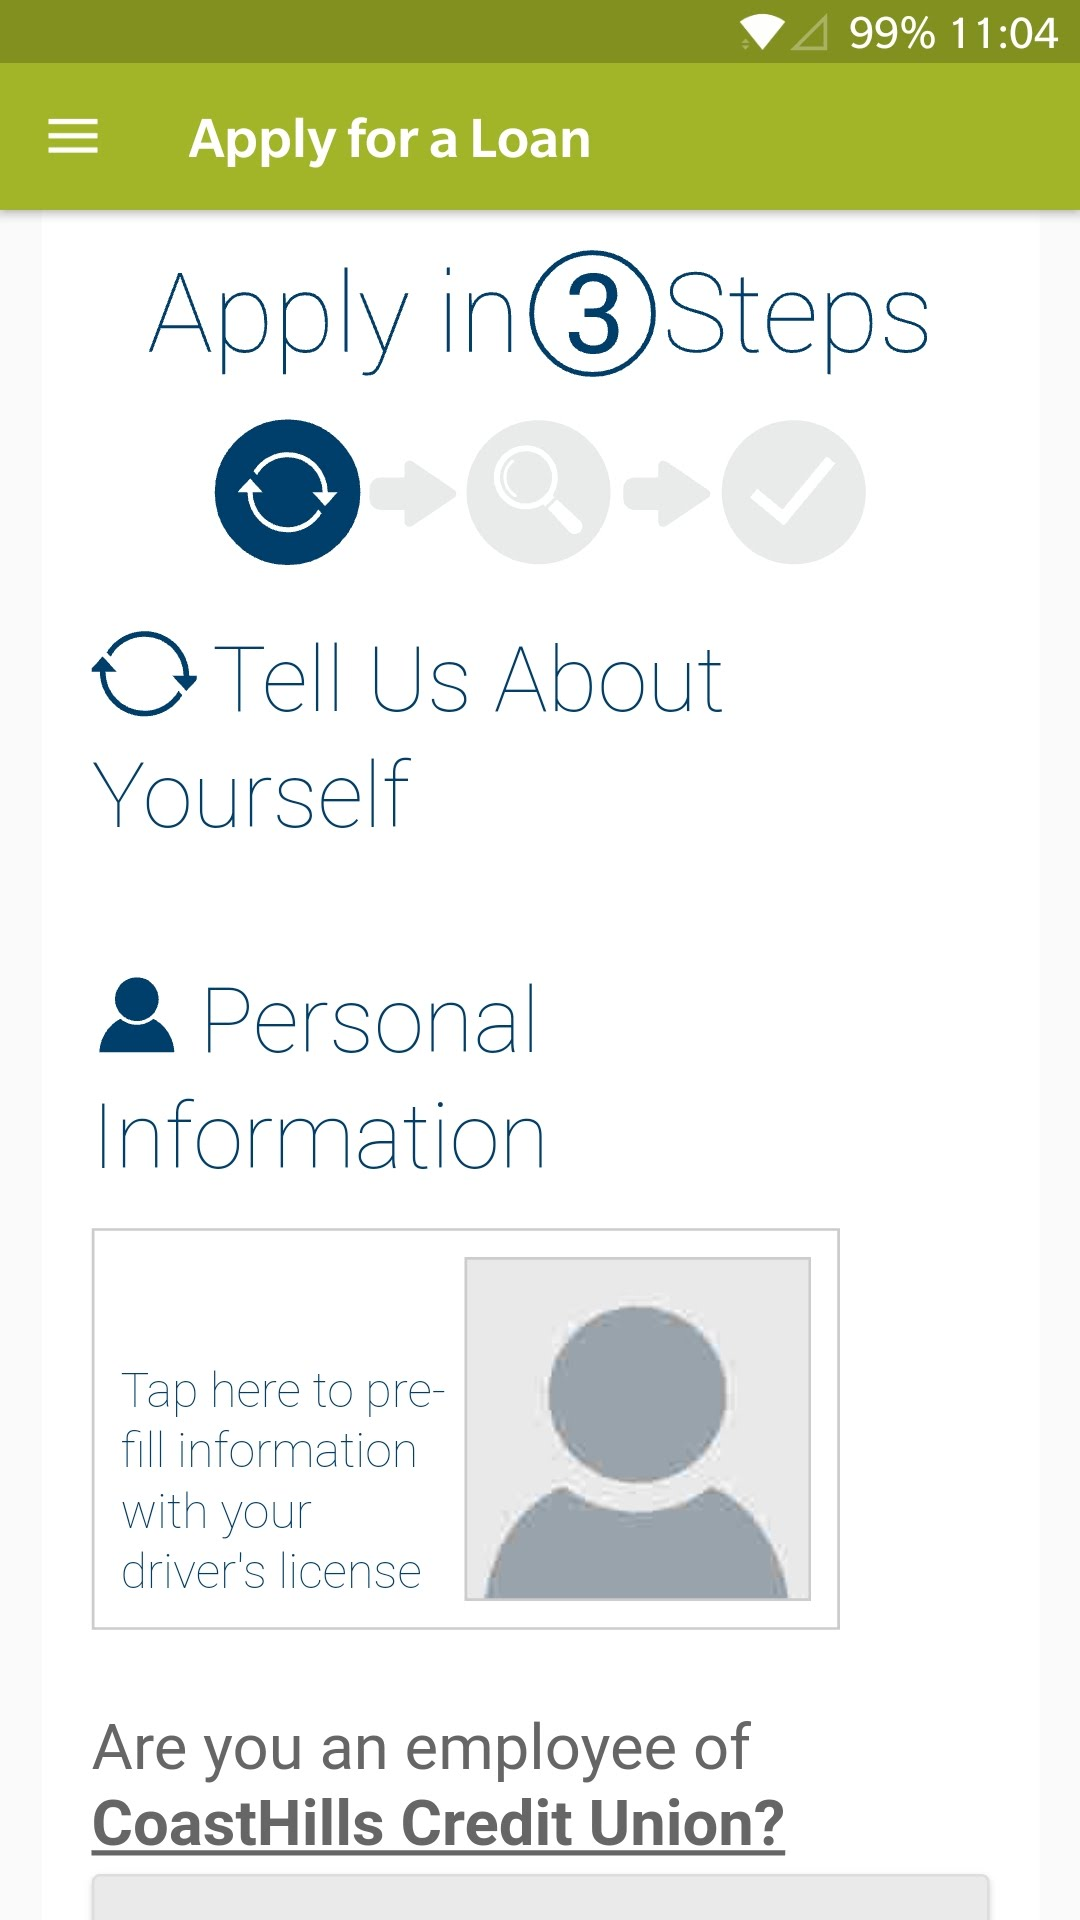 The 'Tell us about yourself' screen